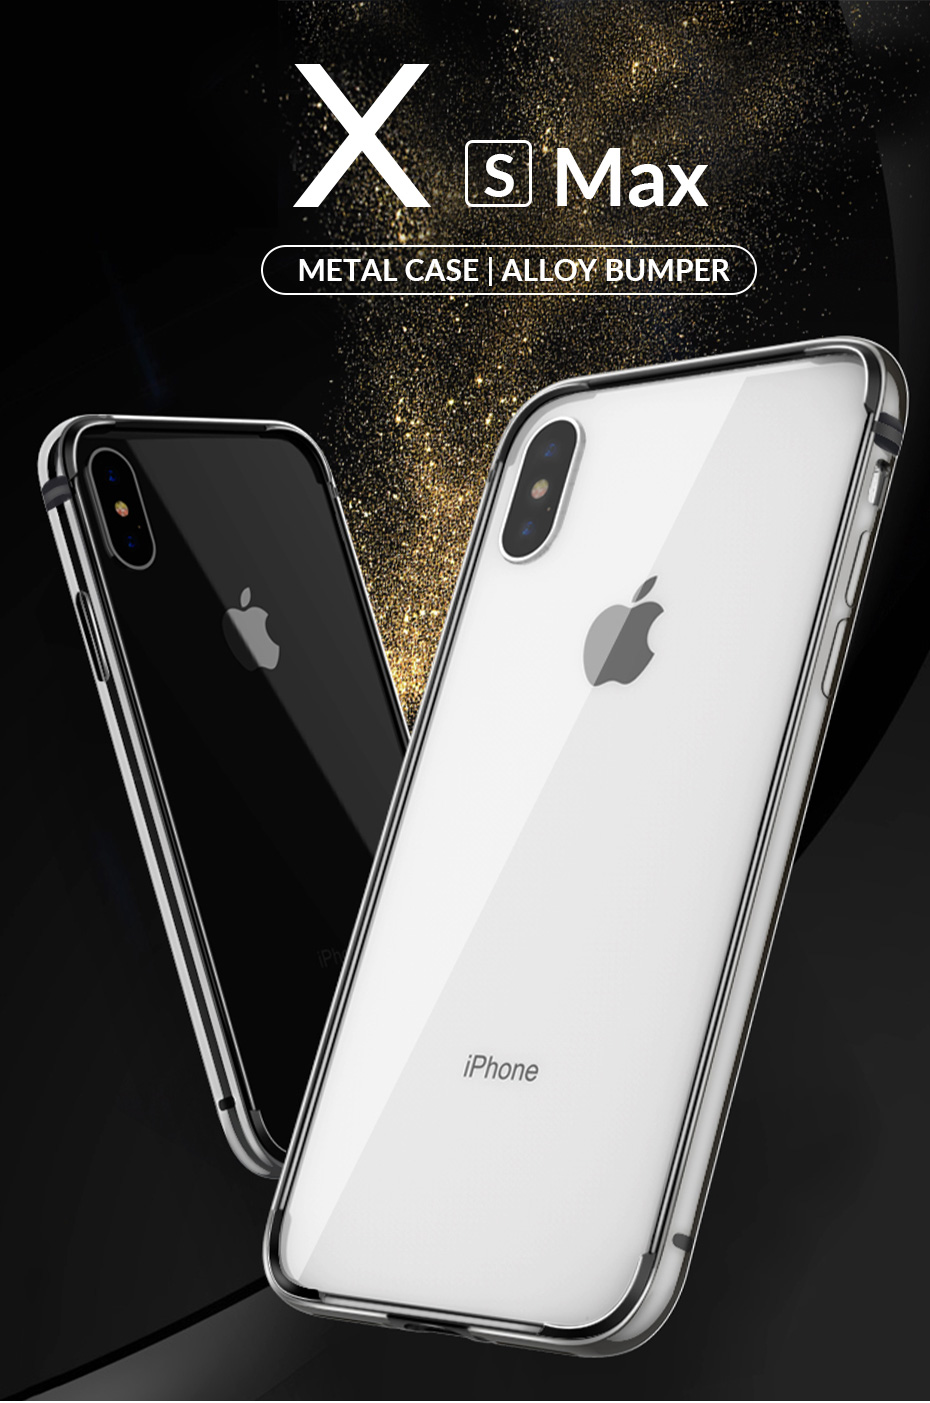 Metal-bumper-case-for-iphone-x-xs-max_01